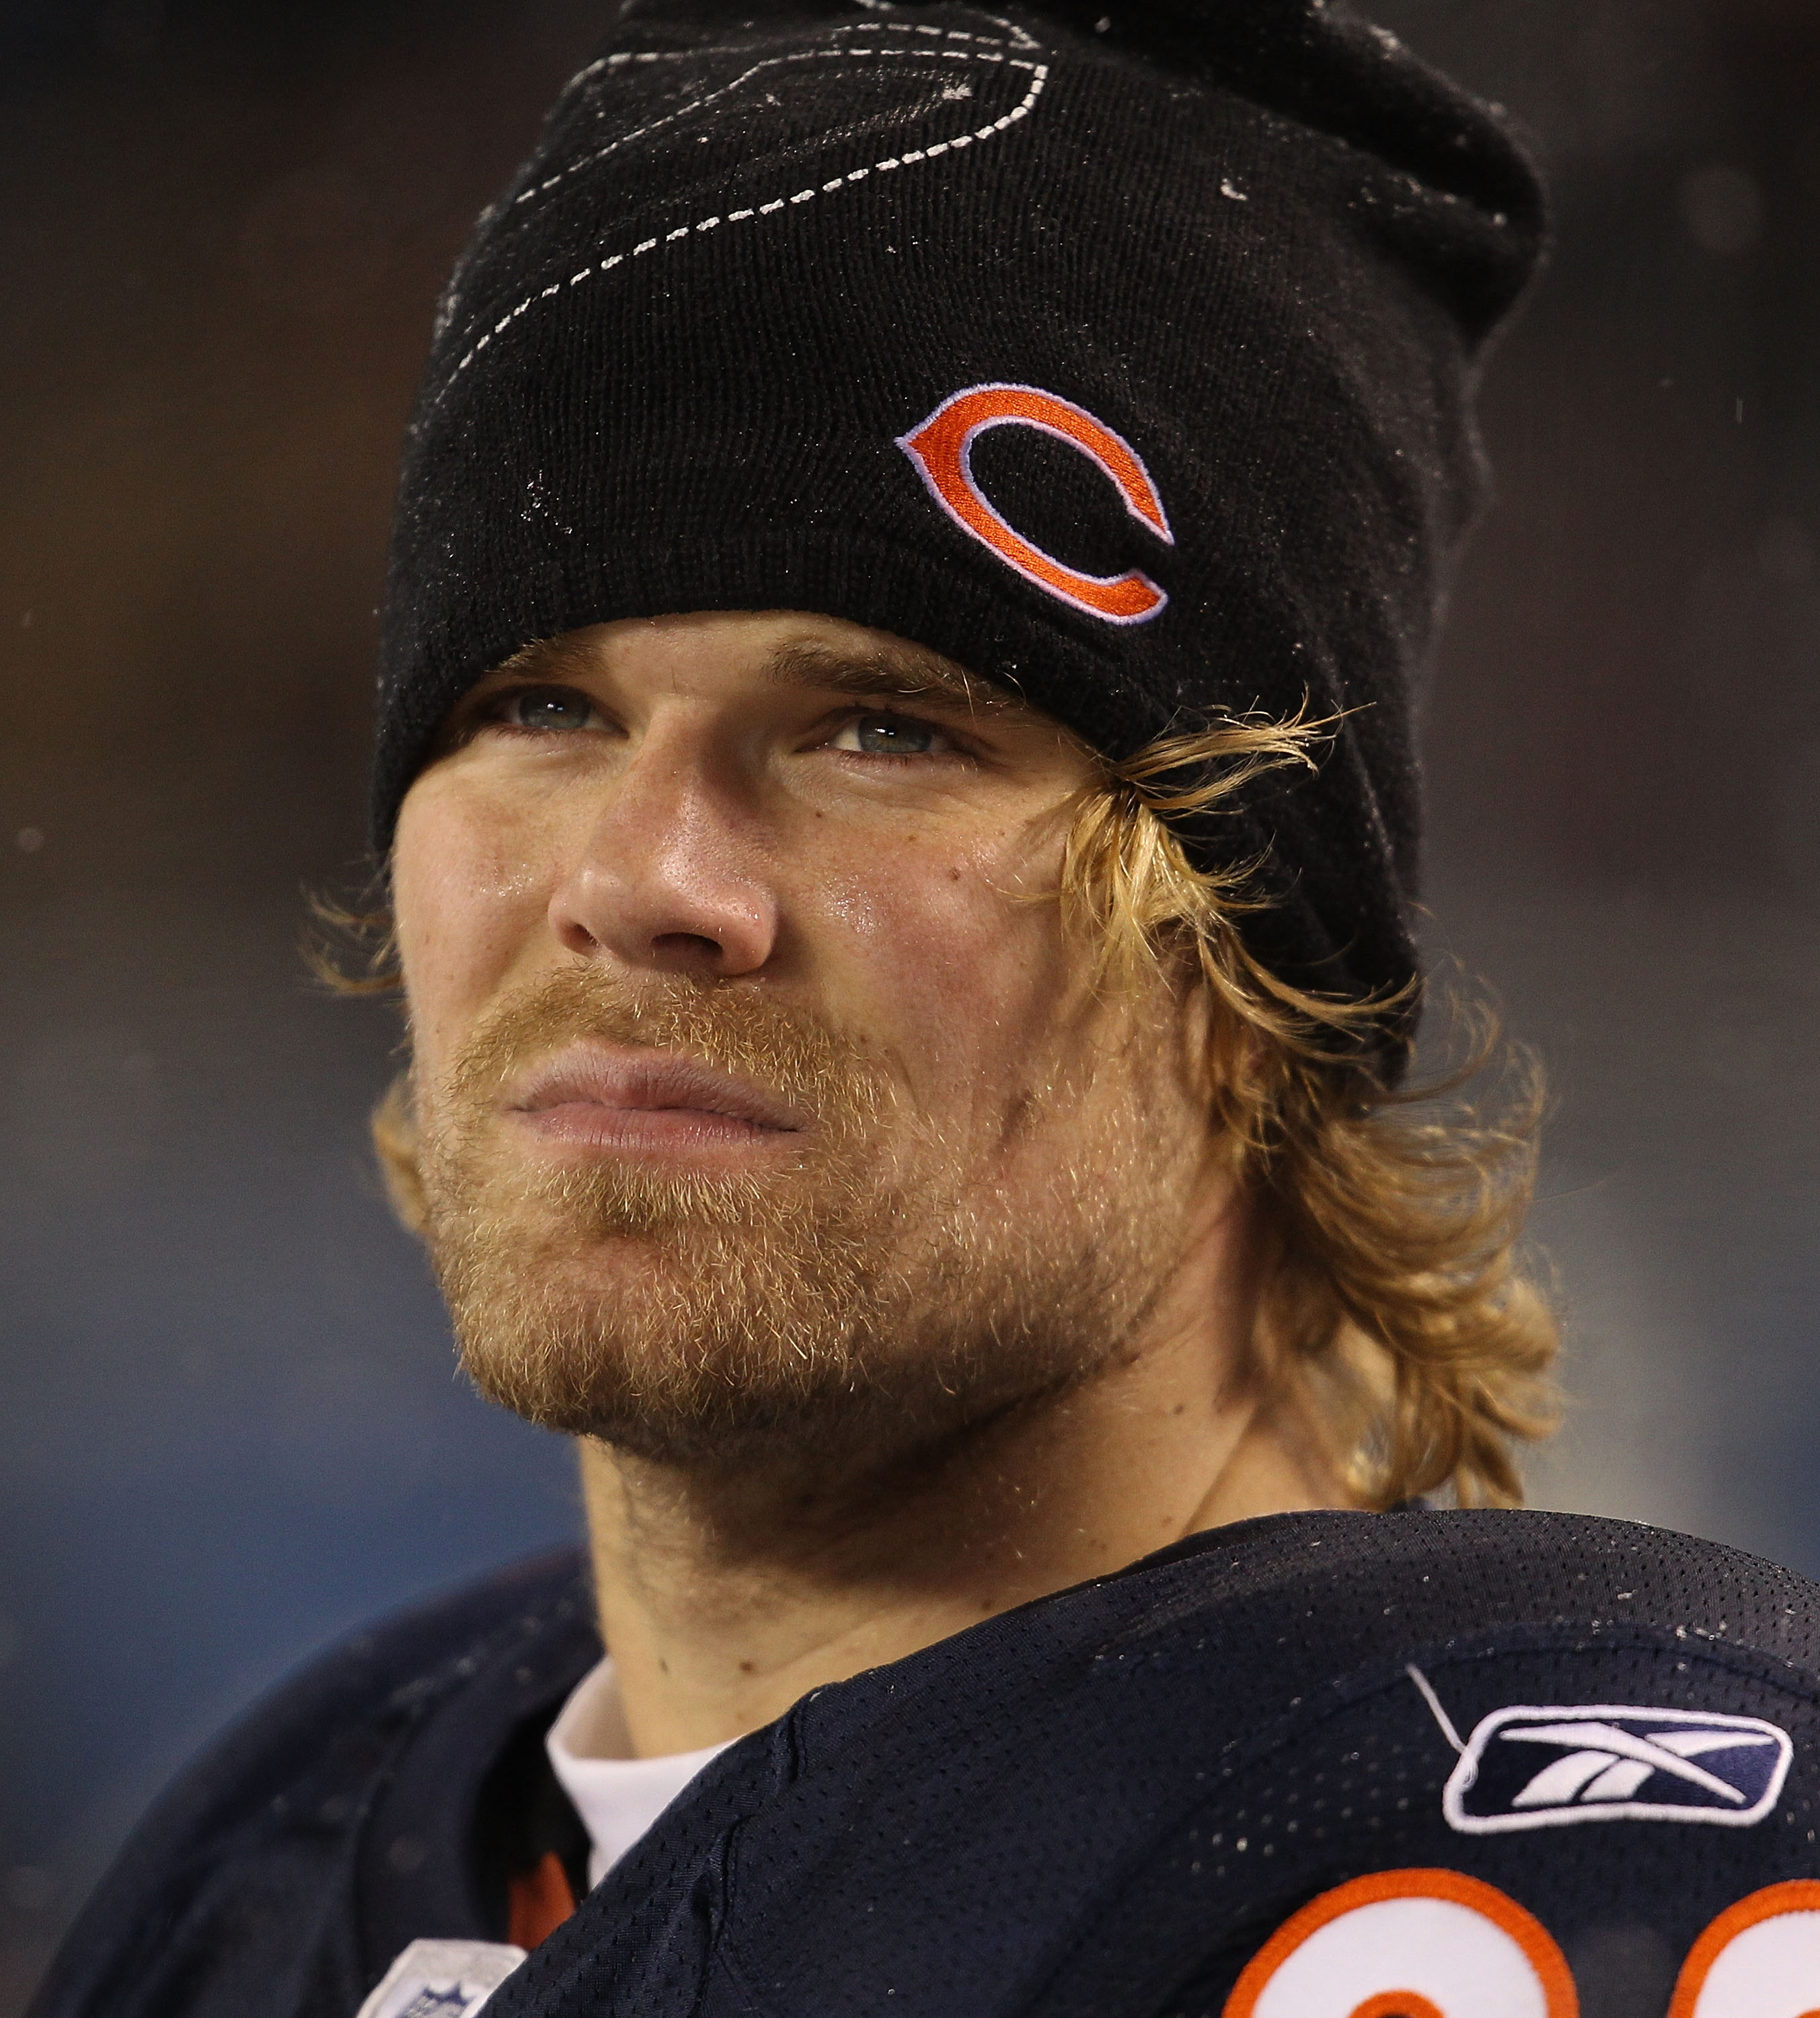 CHICAGO - DECEMBER 12: Greg Olsen #82 of the Chicago Bears waits on the sidelines for the final seconds of a game against the New England Patriots at Soldier Field on December 12, 2010 in Chicago, Illinois. The Patriots defeated the Bears 36-7. (Photo by